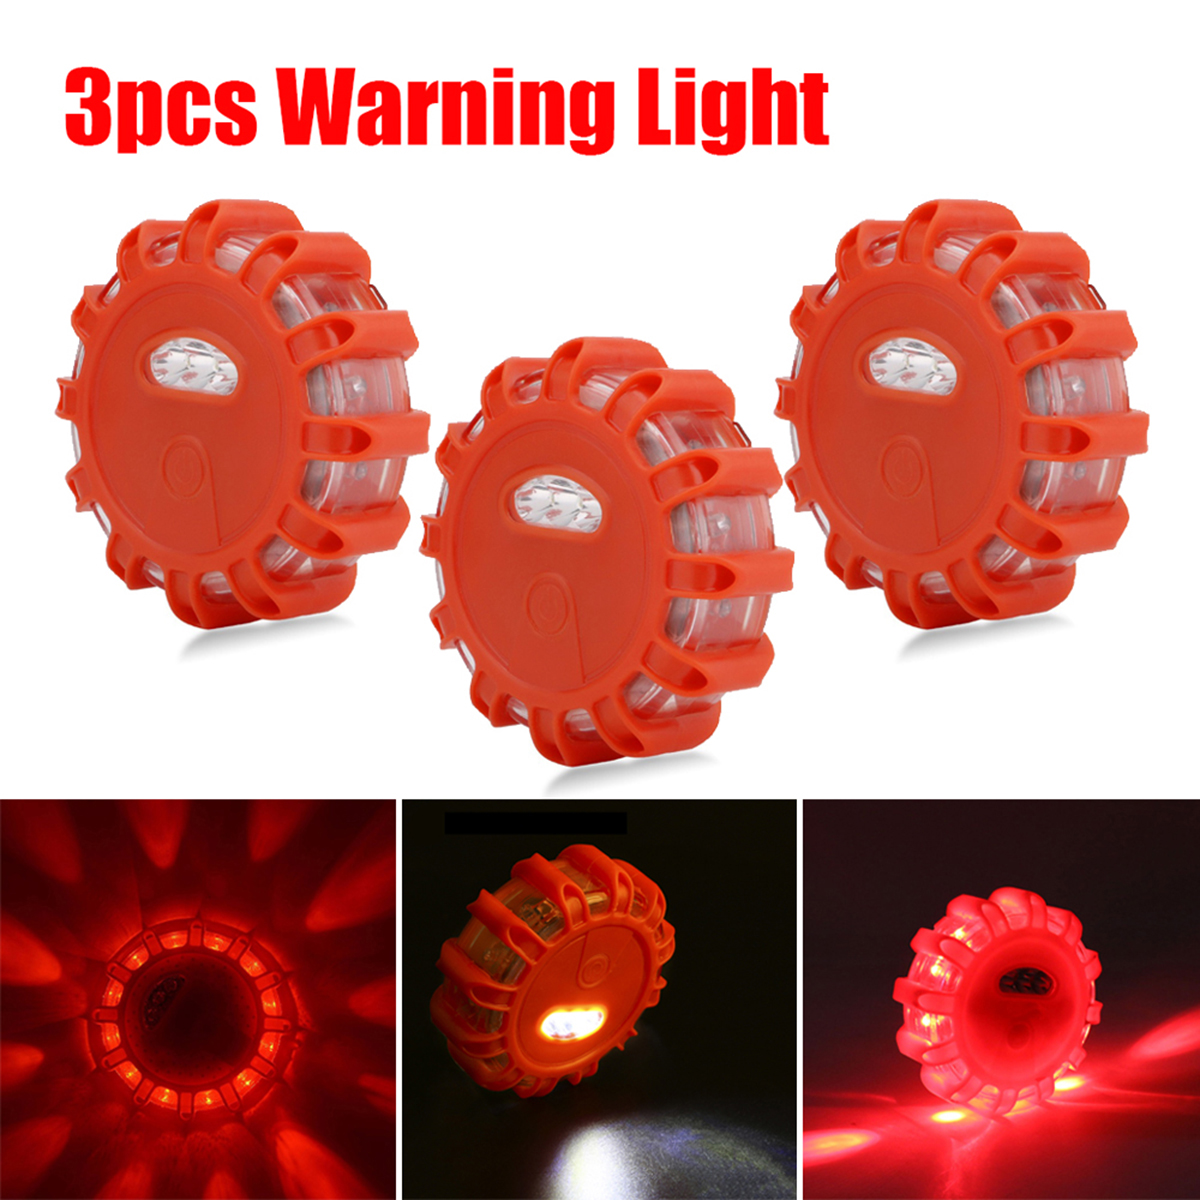 3pcs Security Alarm Strobe Signal LED Lamp Road Rescue Lights Flares Flashlight Warning Light Roadside Safety Flashing Light 1pcs rechargeable flashing warning lights led road flares red safety flashlight beacons roadside emergency disc beacon